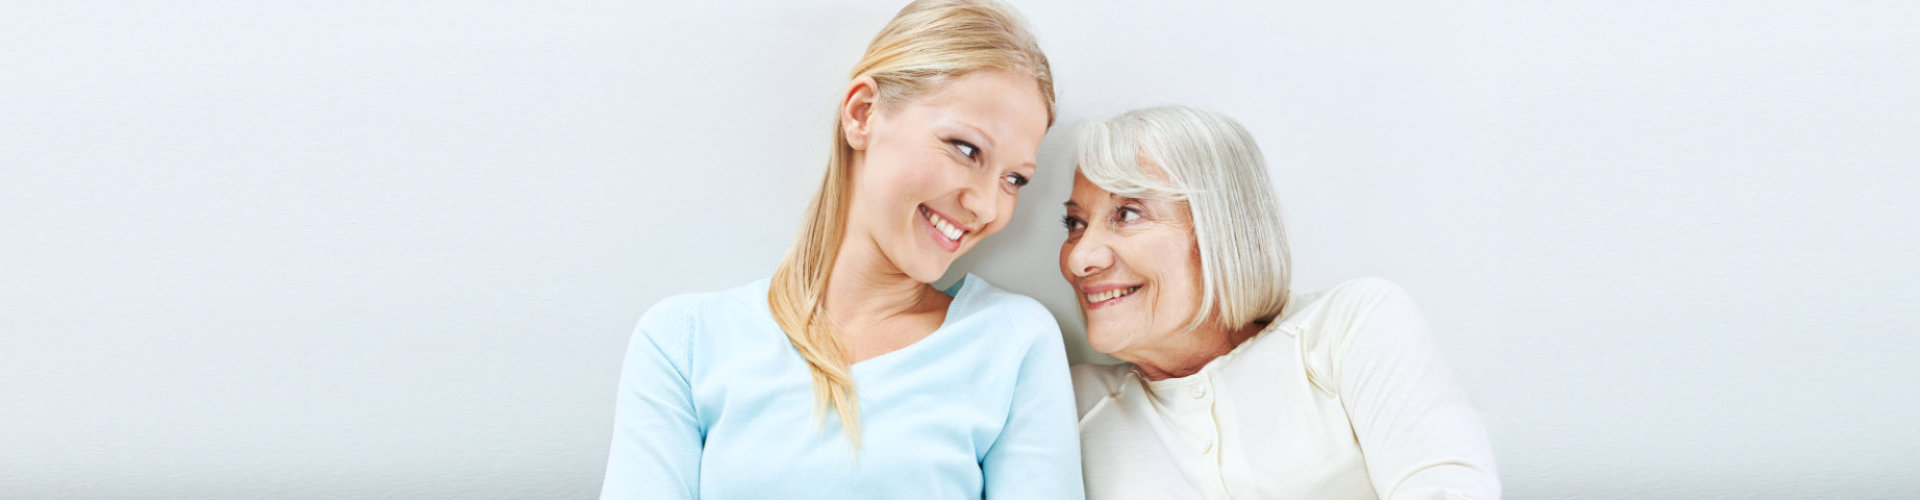 caregiver and a senior woman smiling to each other